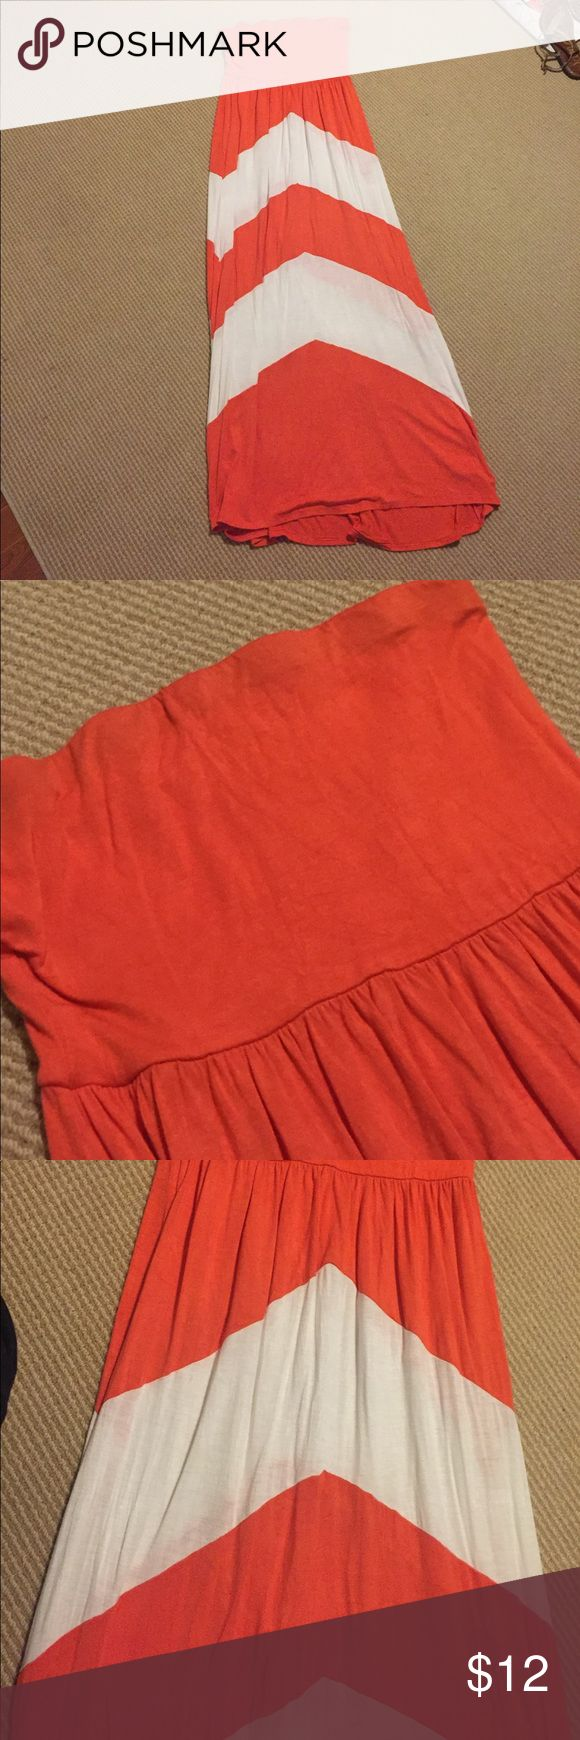 Vestique Chevron Strapless Maxi Dress Size Large Vestique Chevron Strapless Maxi Dress Size Large. Some wash and wear noted due to nature of fabric but still great condition. vestique Dresses Maxi